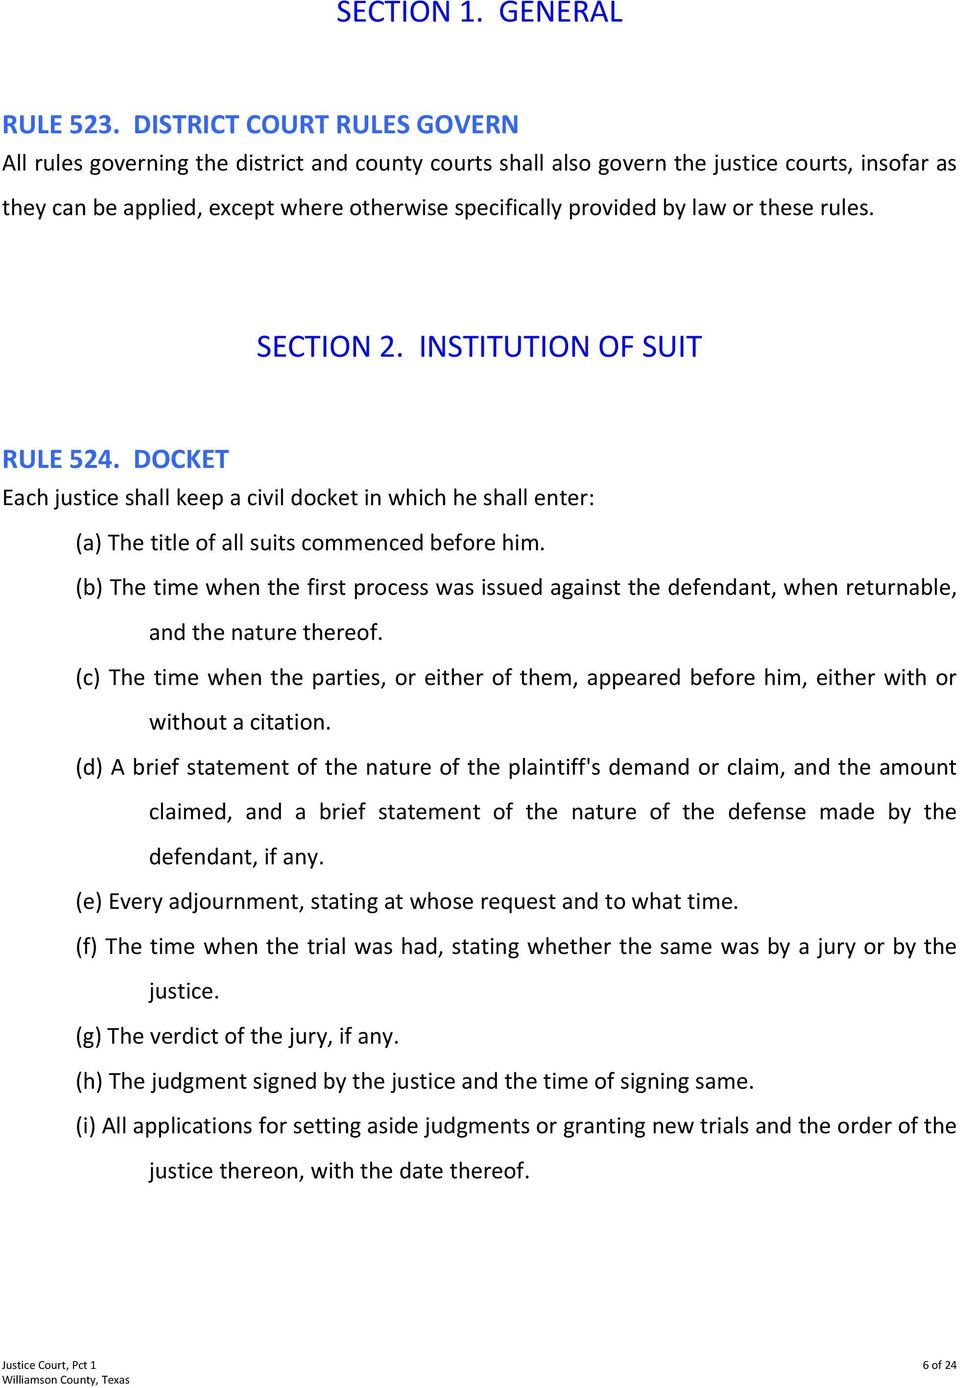 law or these rules. SECTION 2. INSTITUTION OF SUIT RULE 524. DOCKET Each justice shall keep a civil docket in which he shall enter: (a) The title of all suits commenced before him.